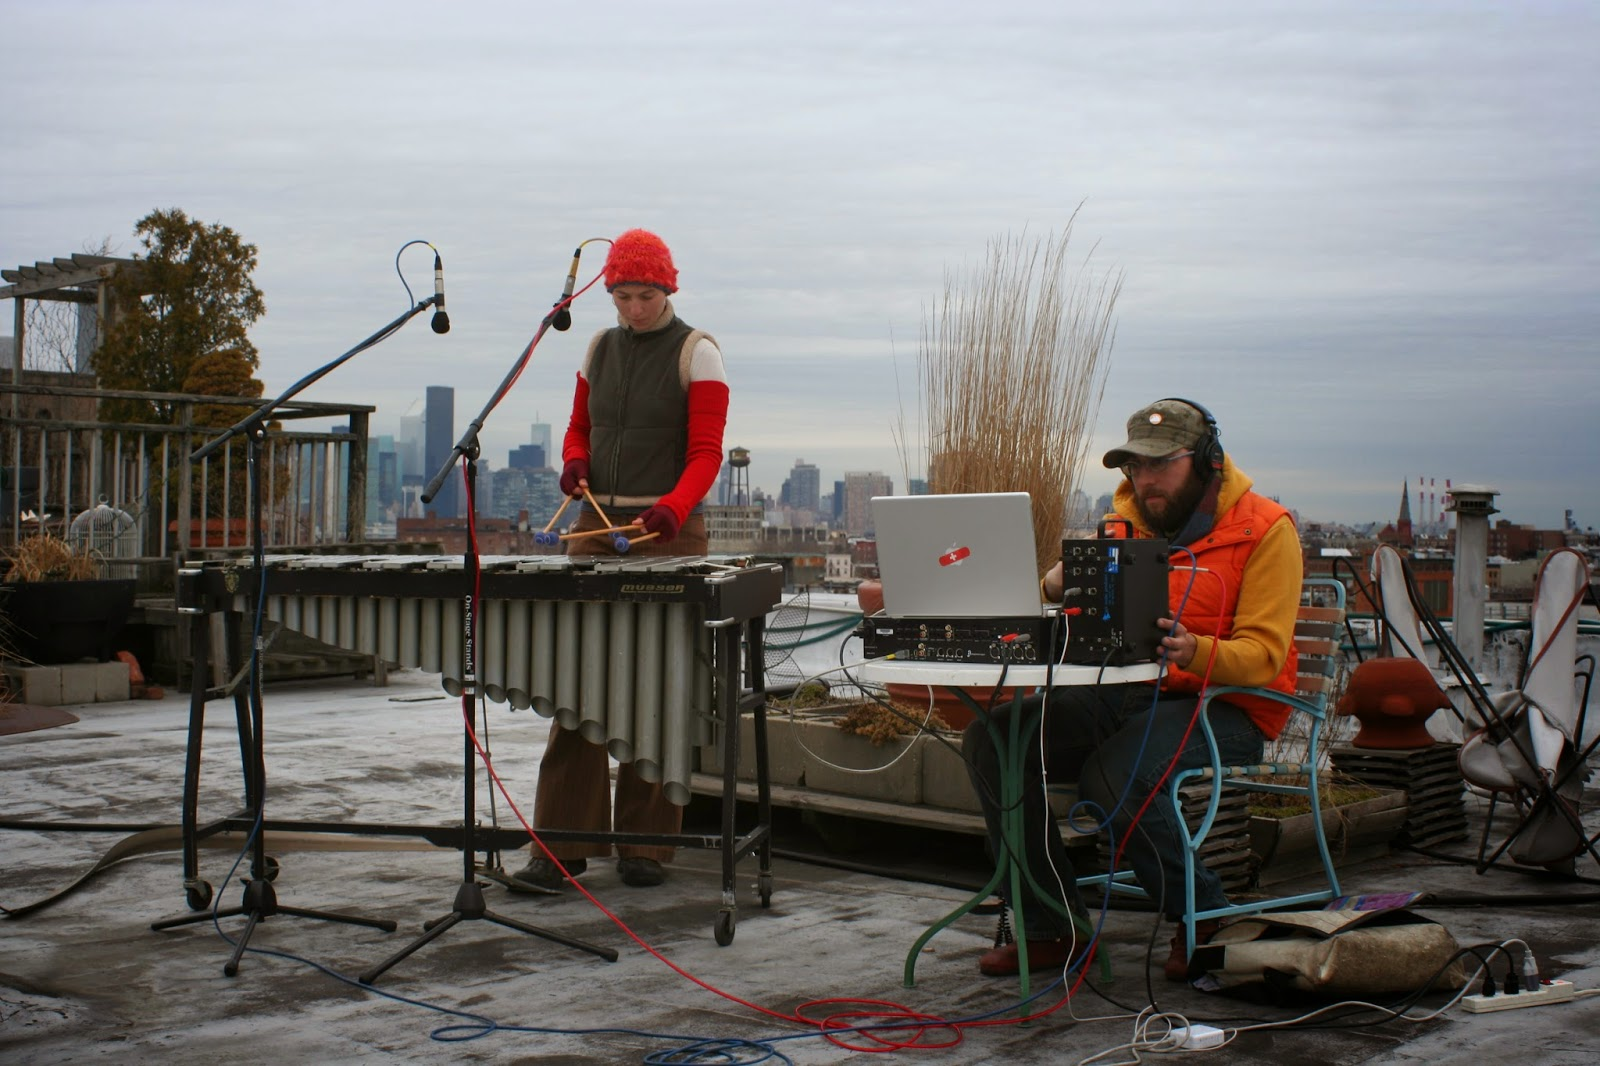 Rae and Jon recording on a rooftop in Brooklyn, NYC..